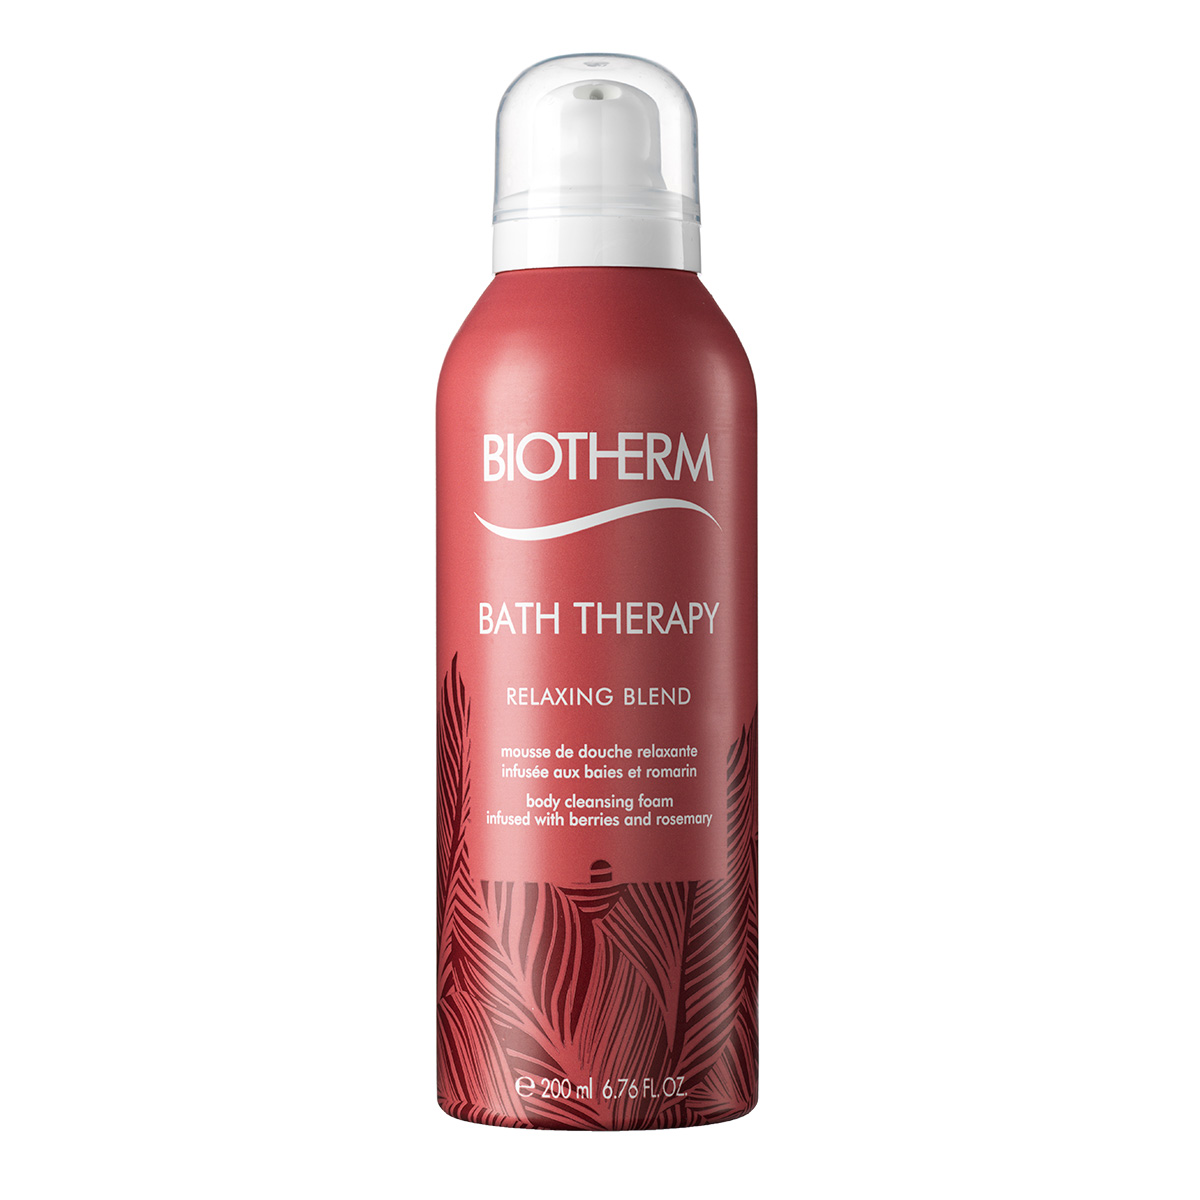 Billede af Biotherm Bath Therapy Relaxing Blend Body Cleansing Foam - 200 ml